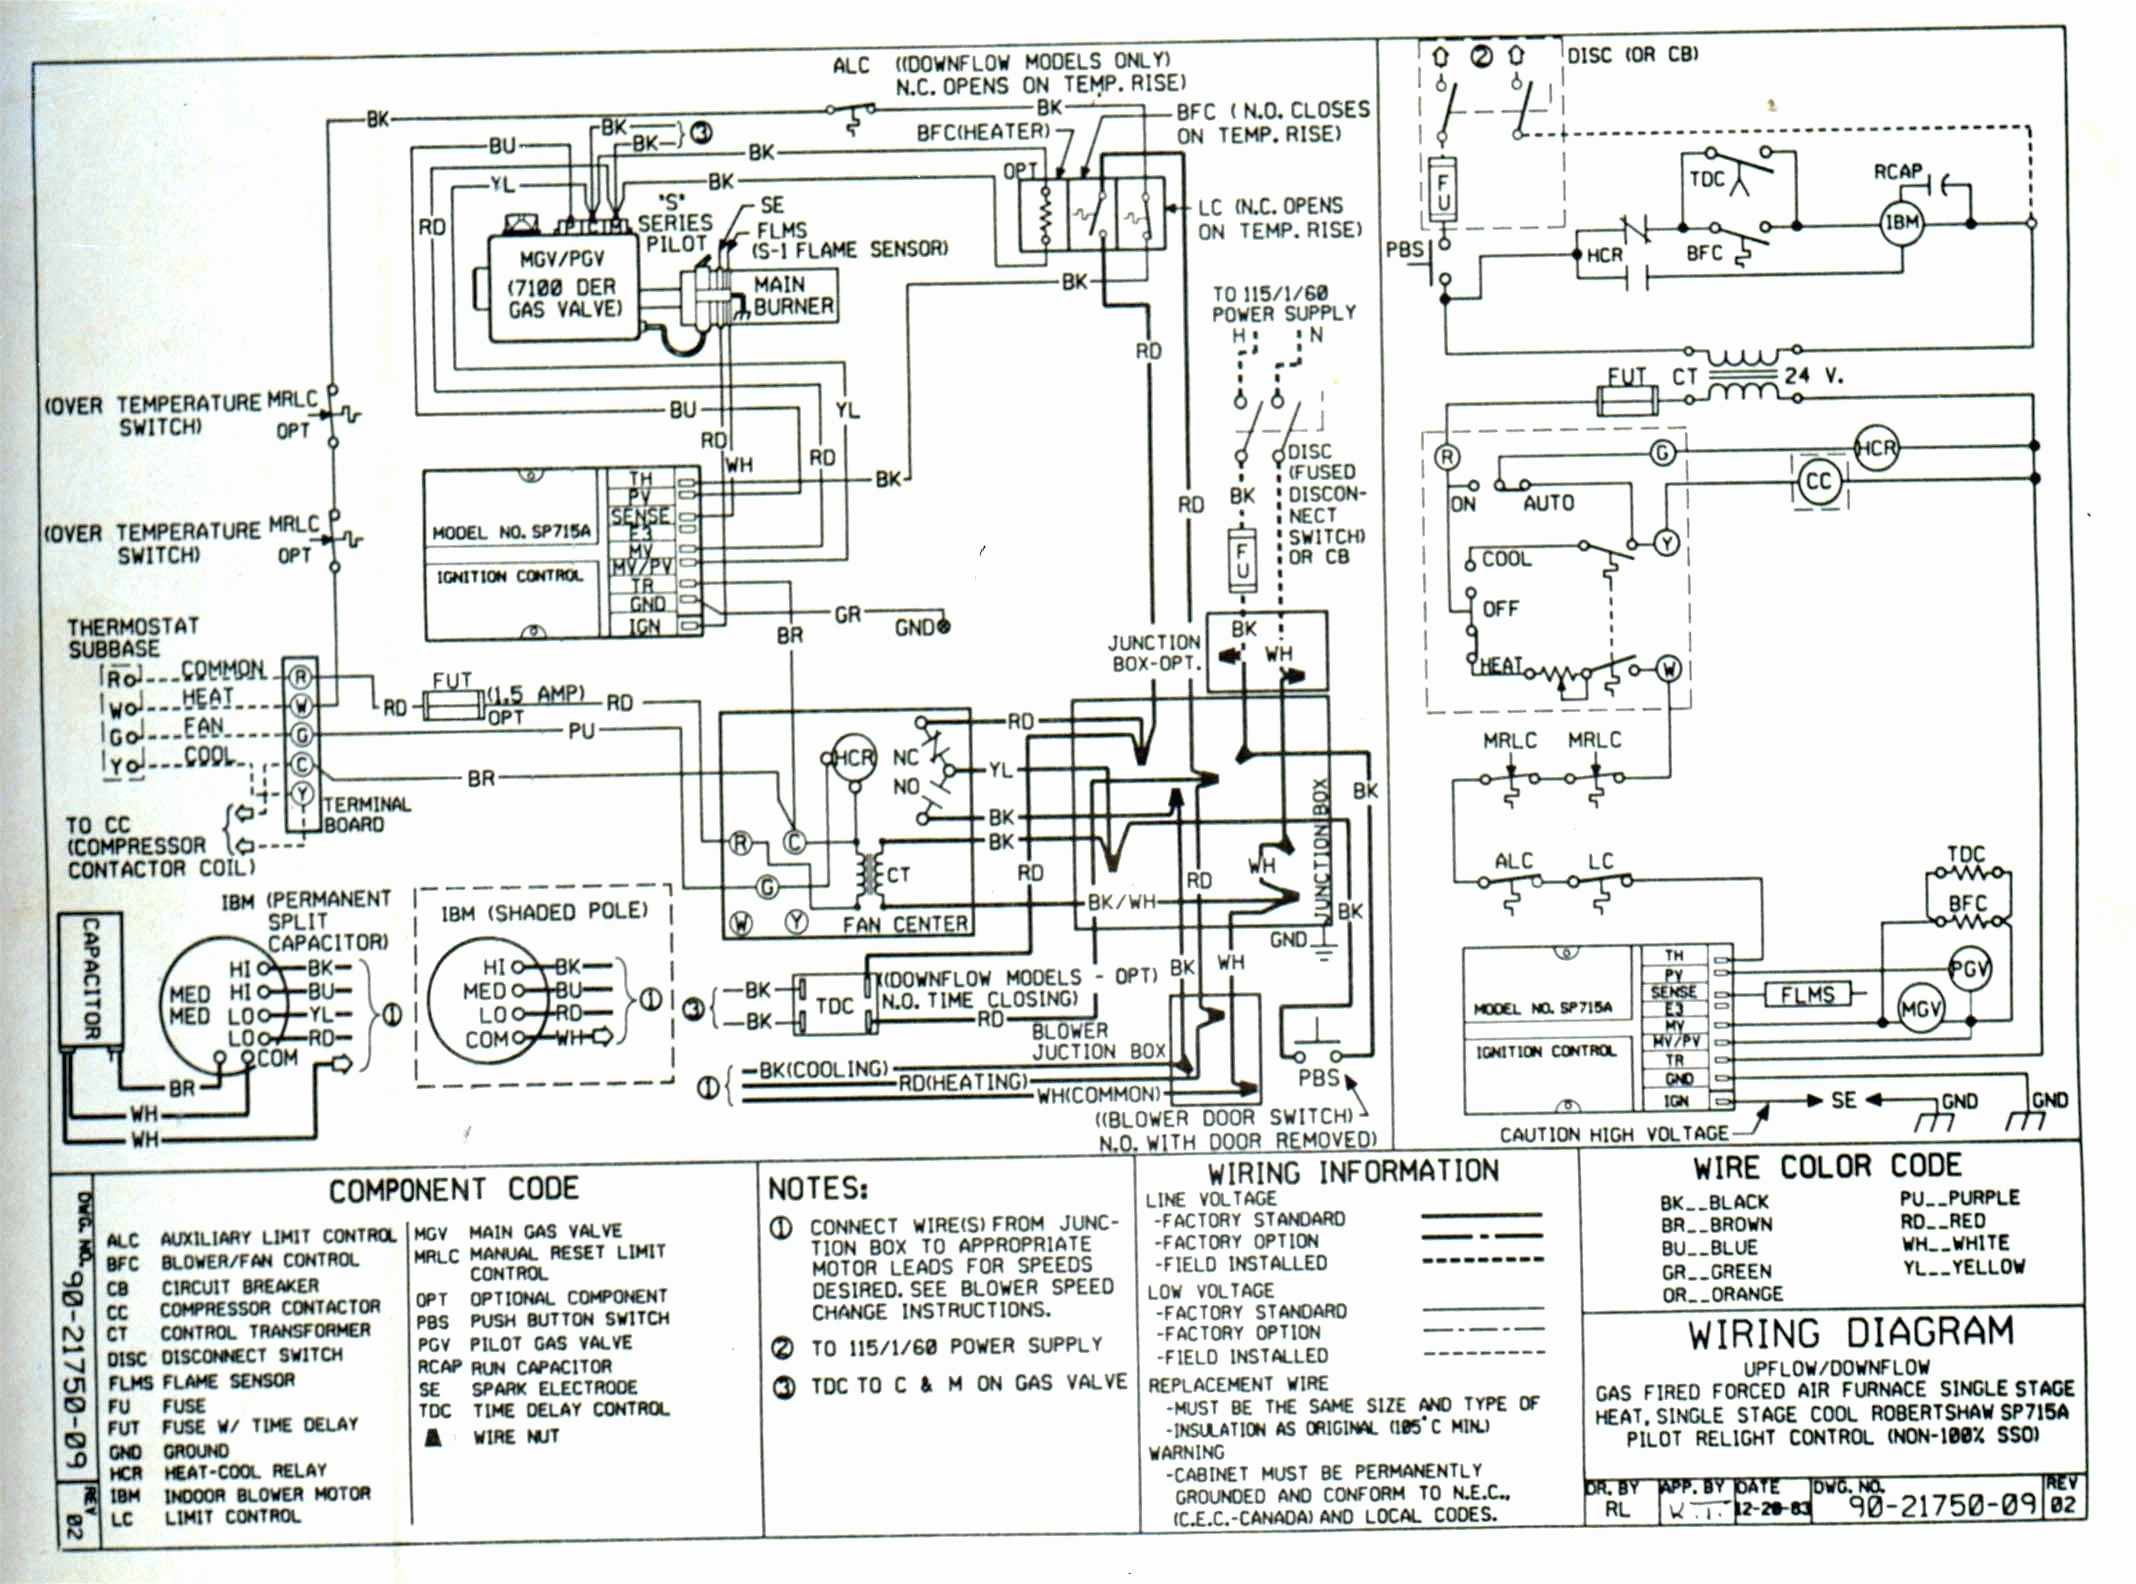 bodine electric dc motor wiring diagram free wiring diagram bodine b50  wiring-diagram bodine electric